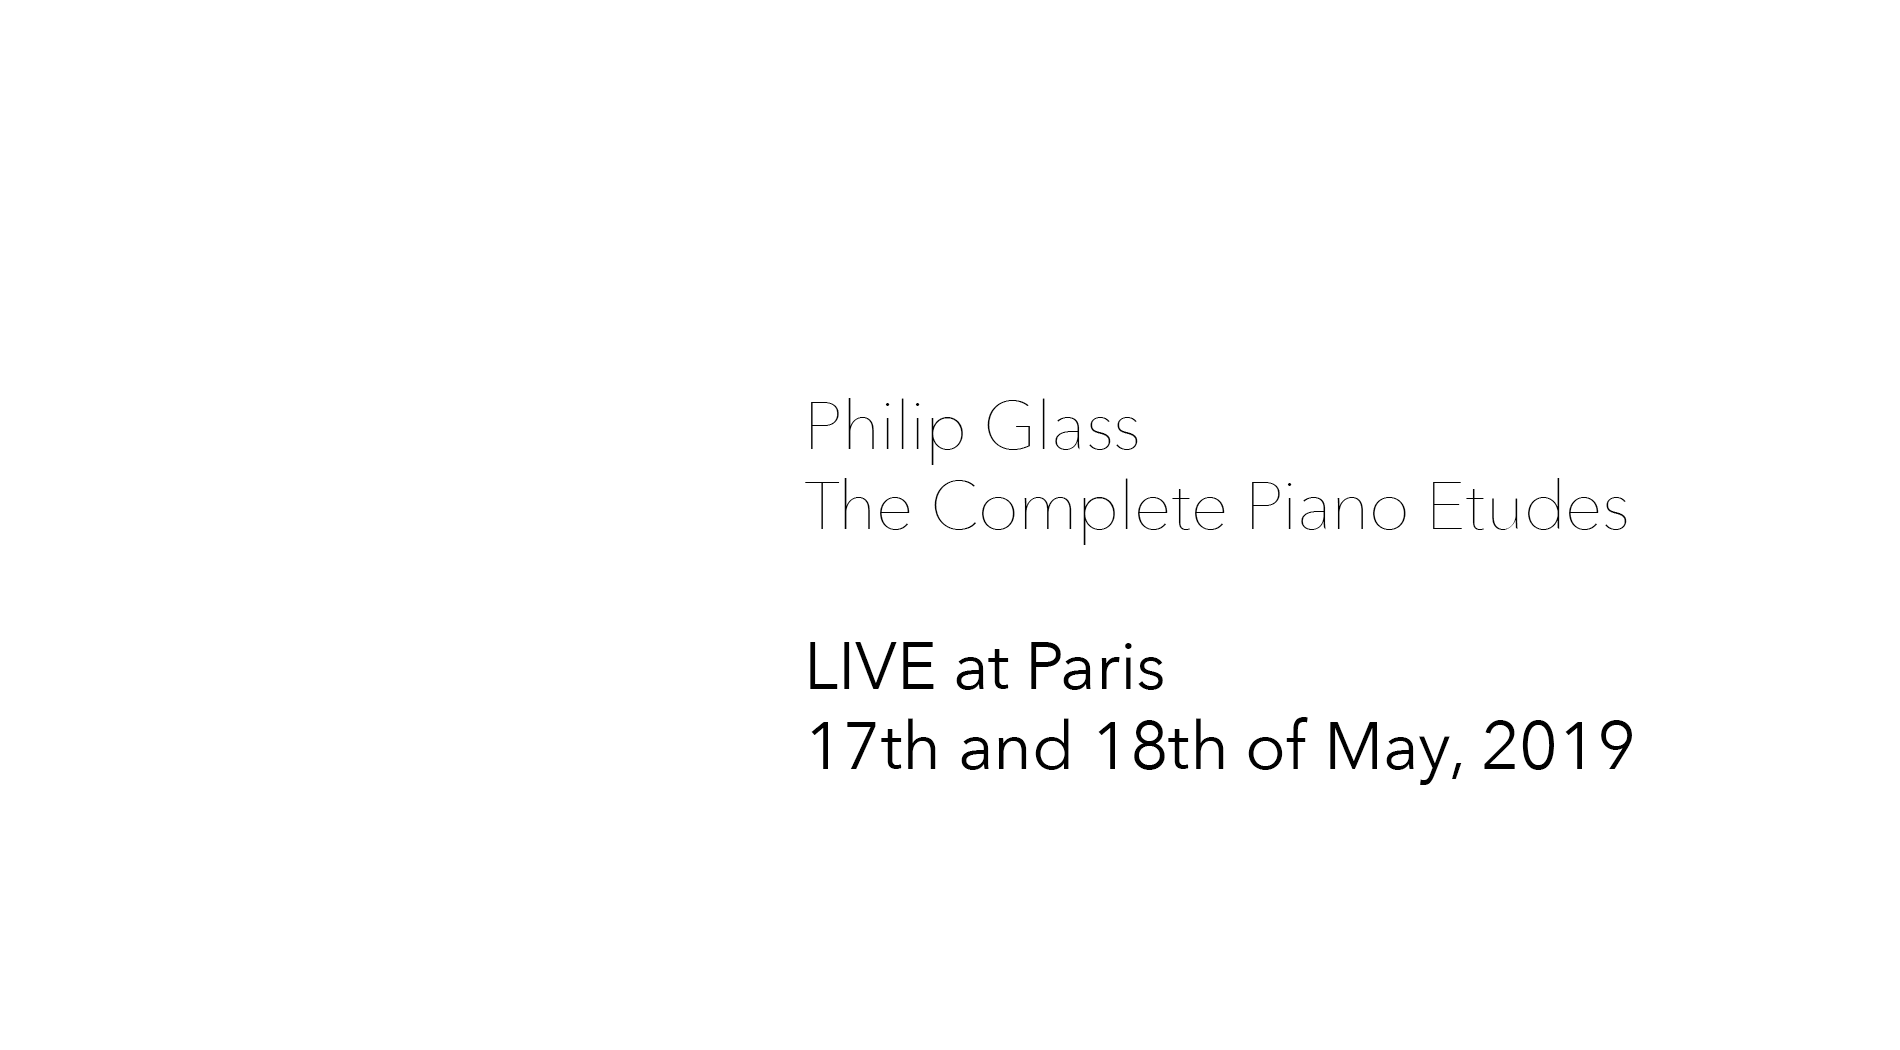 The Complete Piano Etudes LIVE